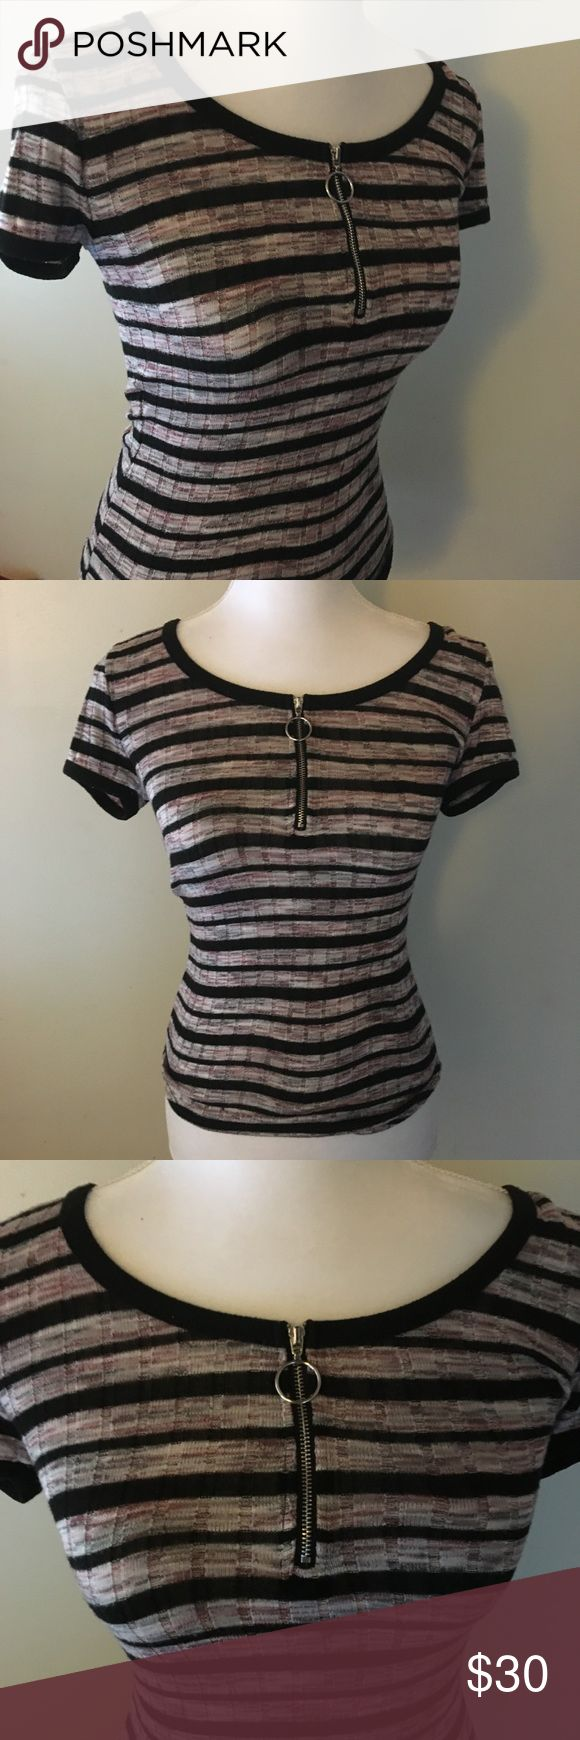 Striped Zip Up Shirt NWOT Super soft maroon, black, and gray striped shirt with quarter zip up. No flaws Forever 21 Tops